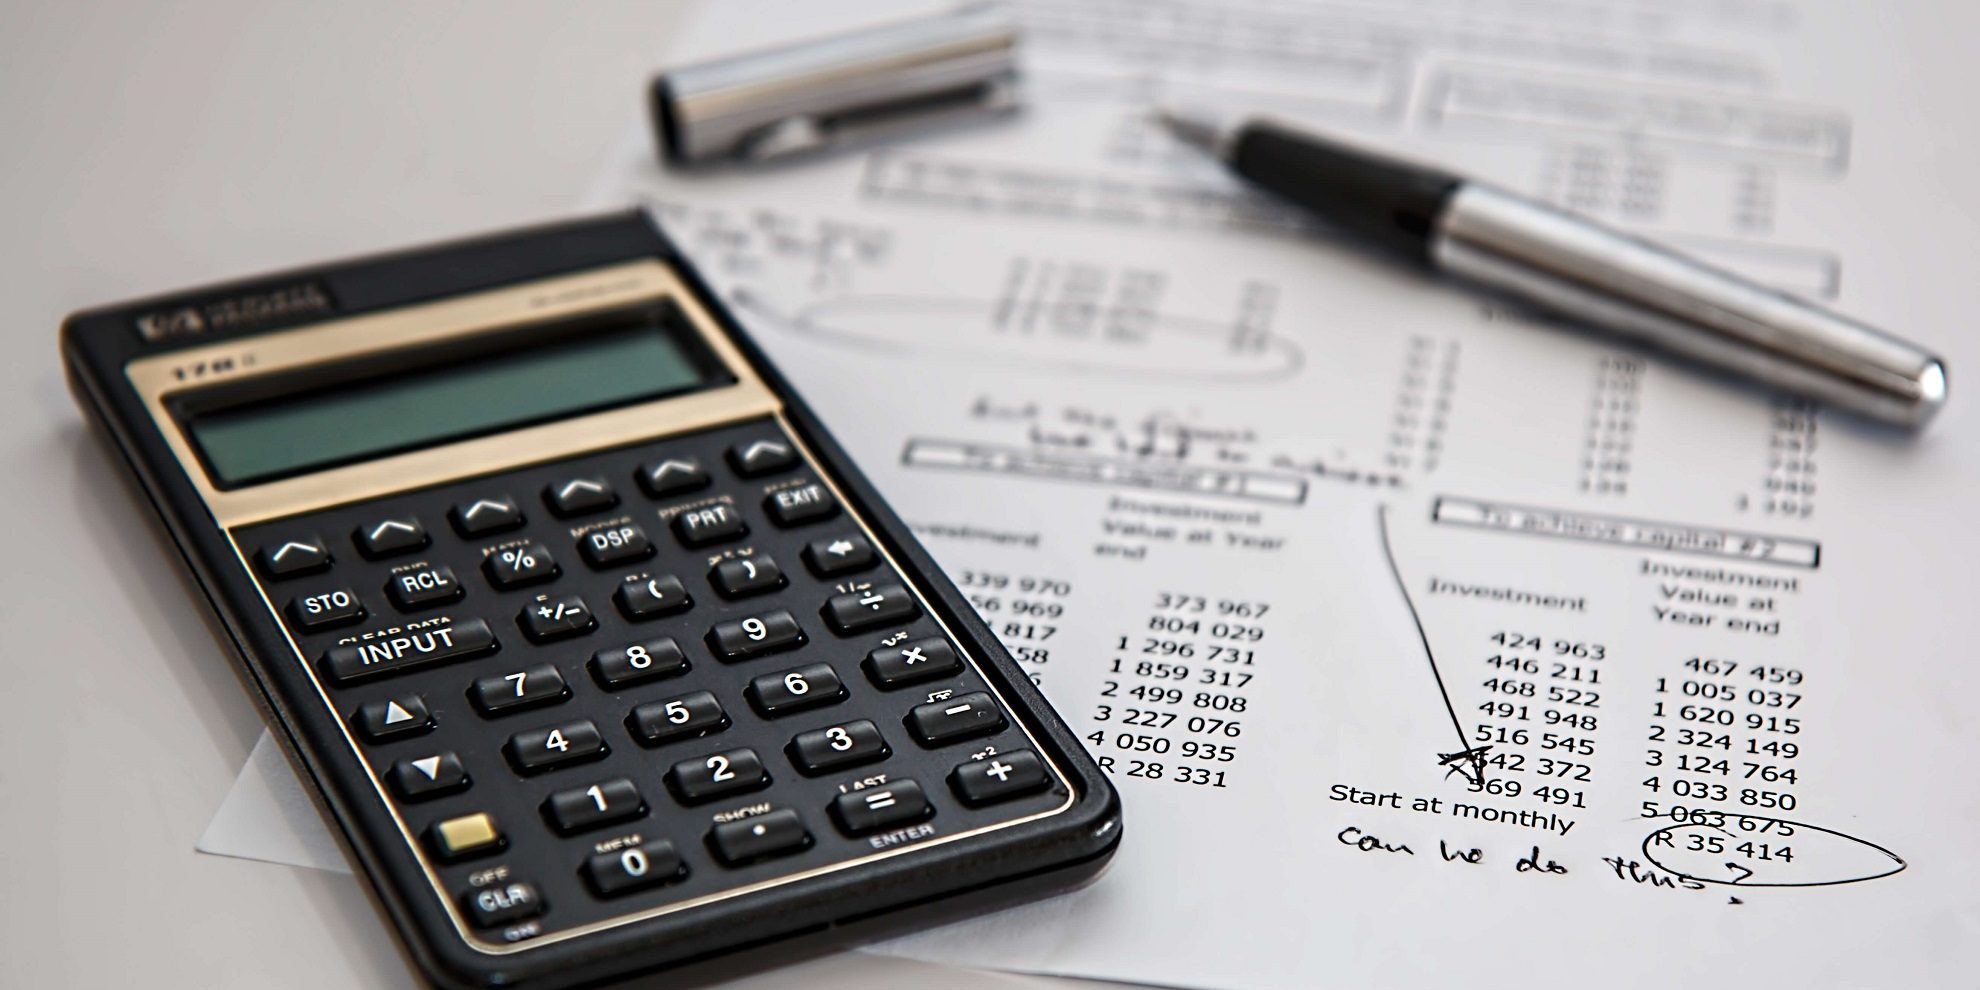 Bookkeeping services with calculator ready